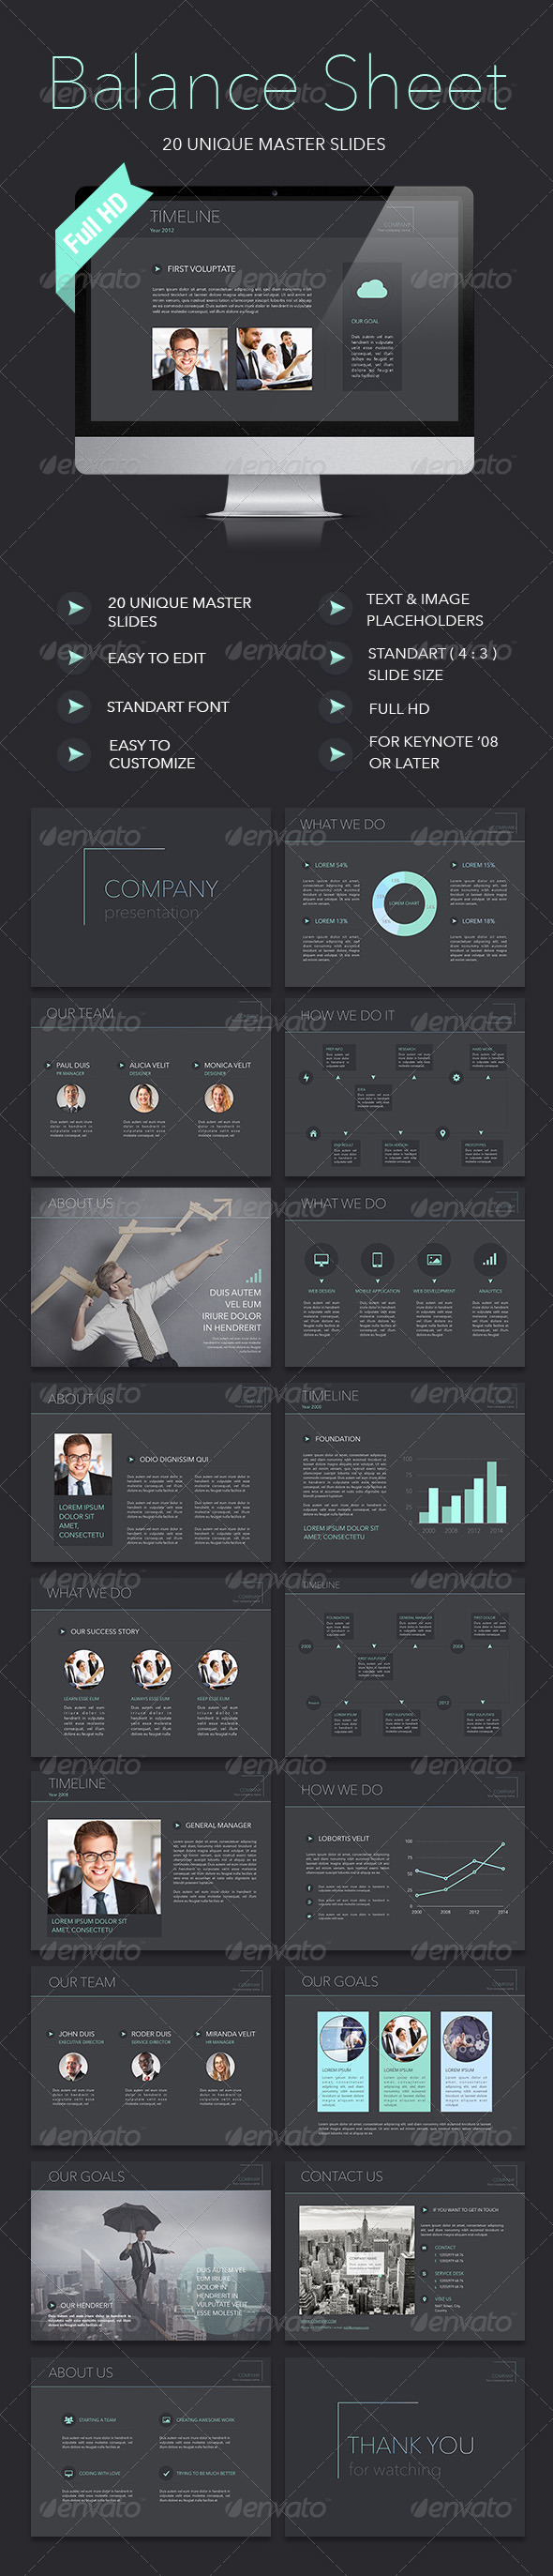 GraphicRiver Balance Sheet Keynote Template 8166560